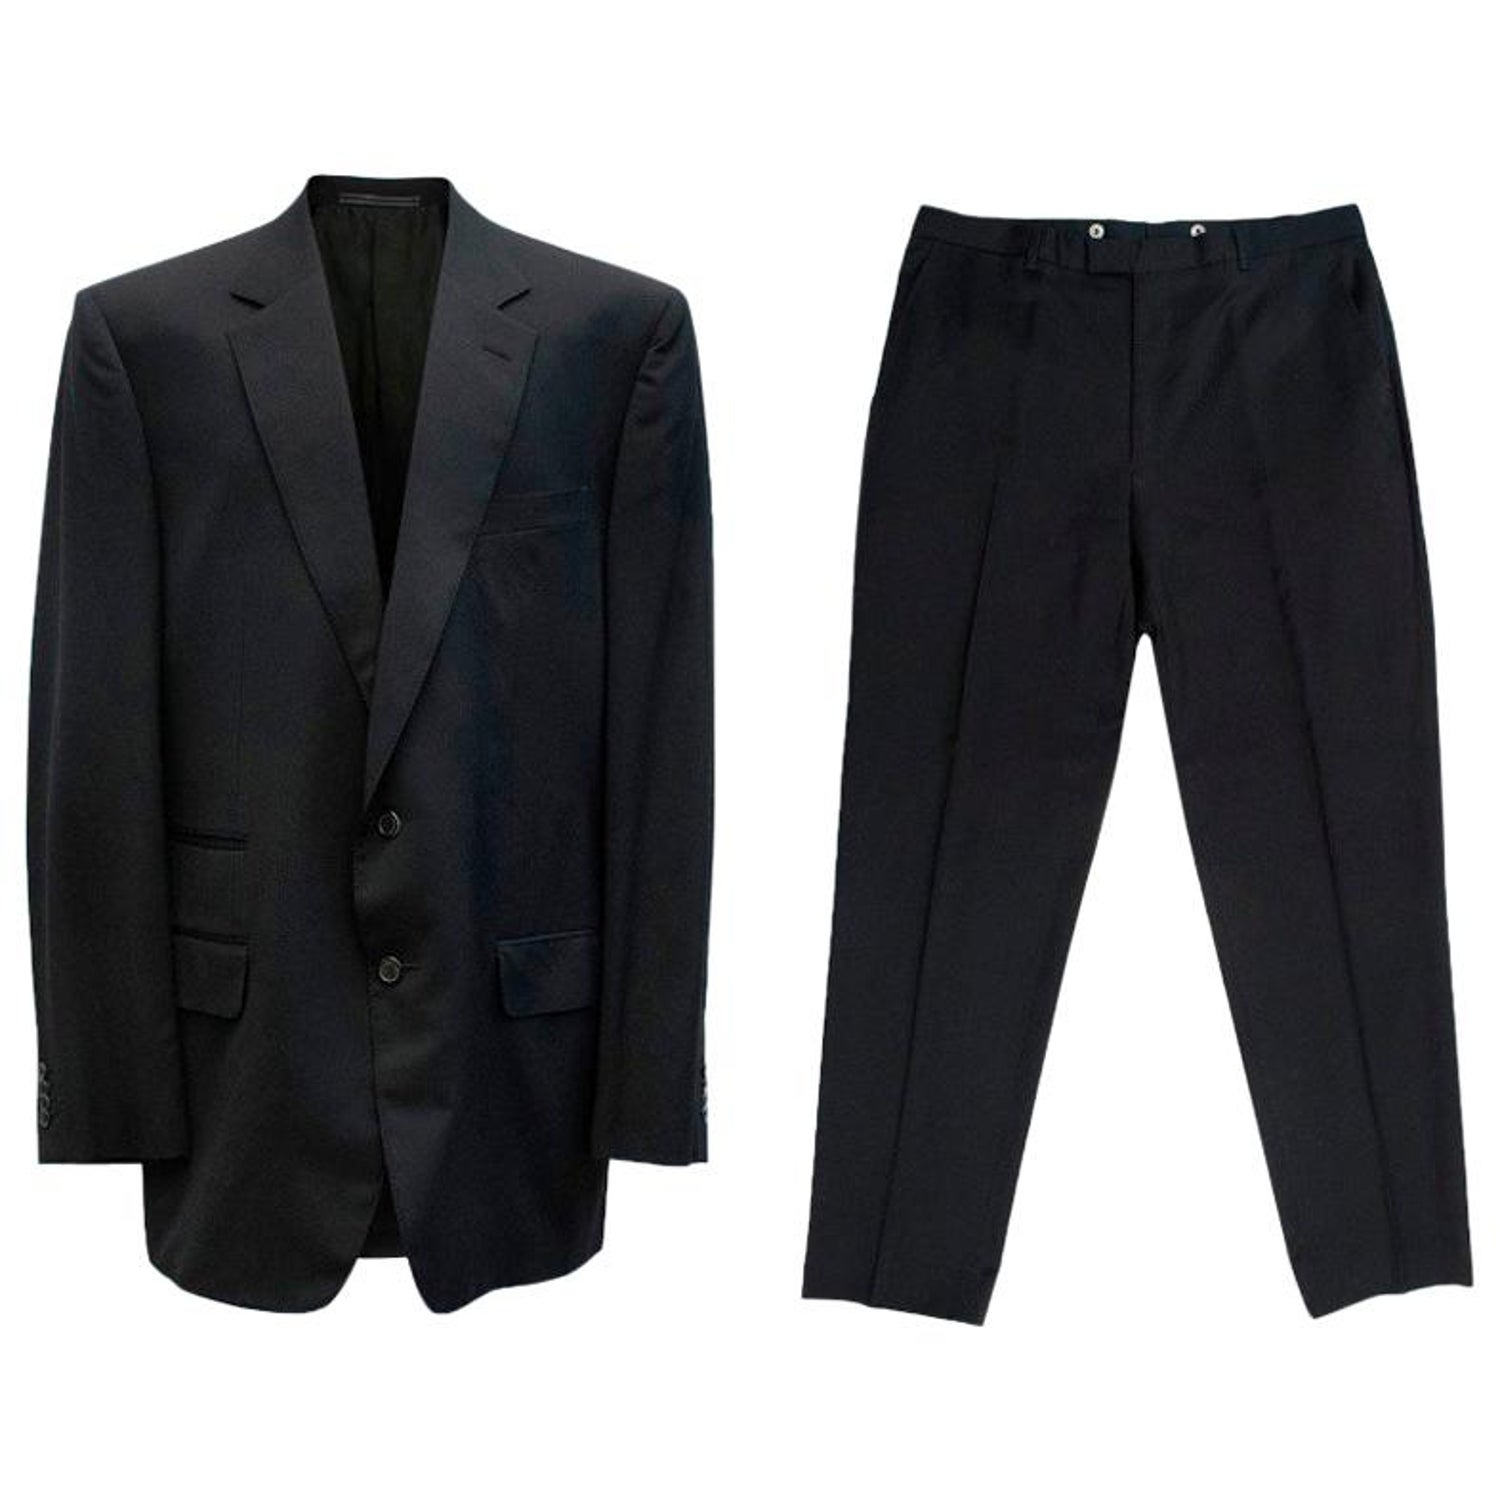 71a586bb5 Gucci Black Wool Suit For Sale at 1stdibs